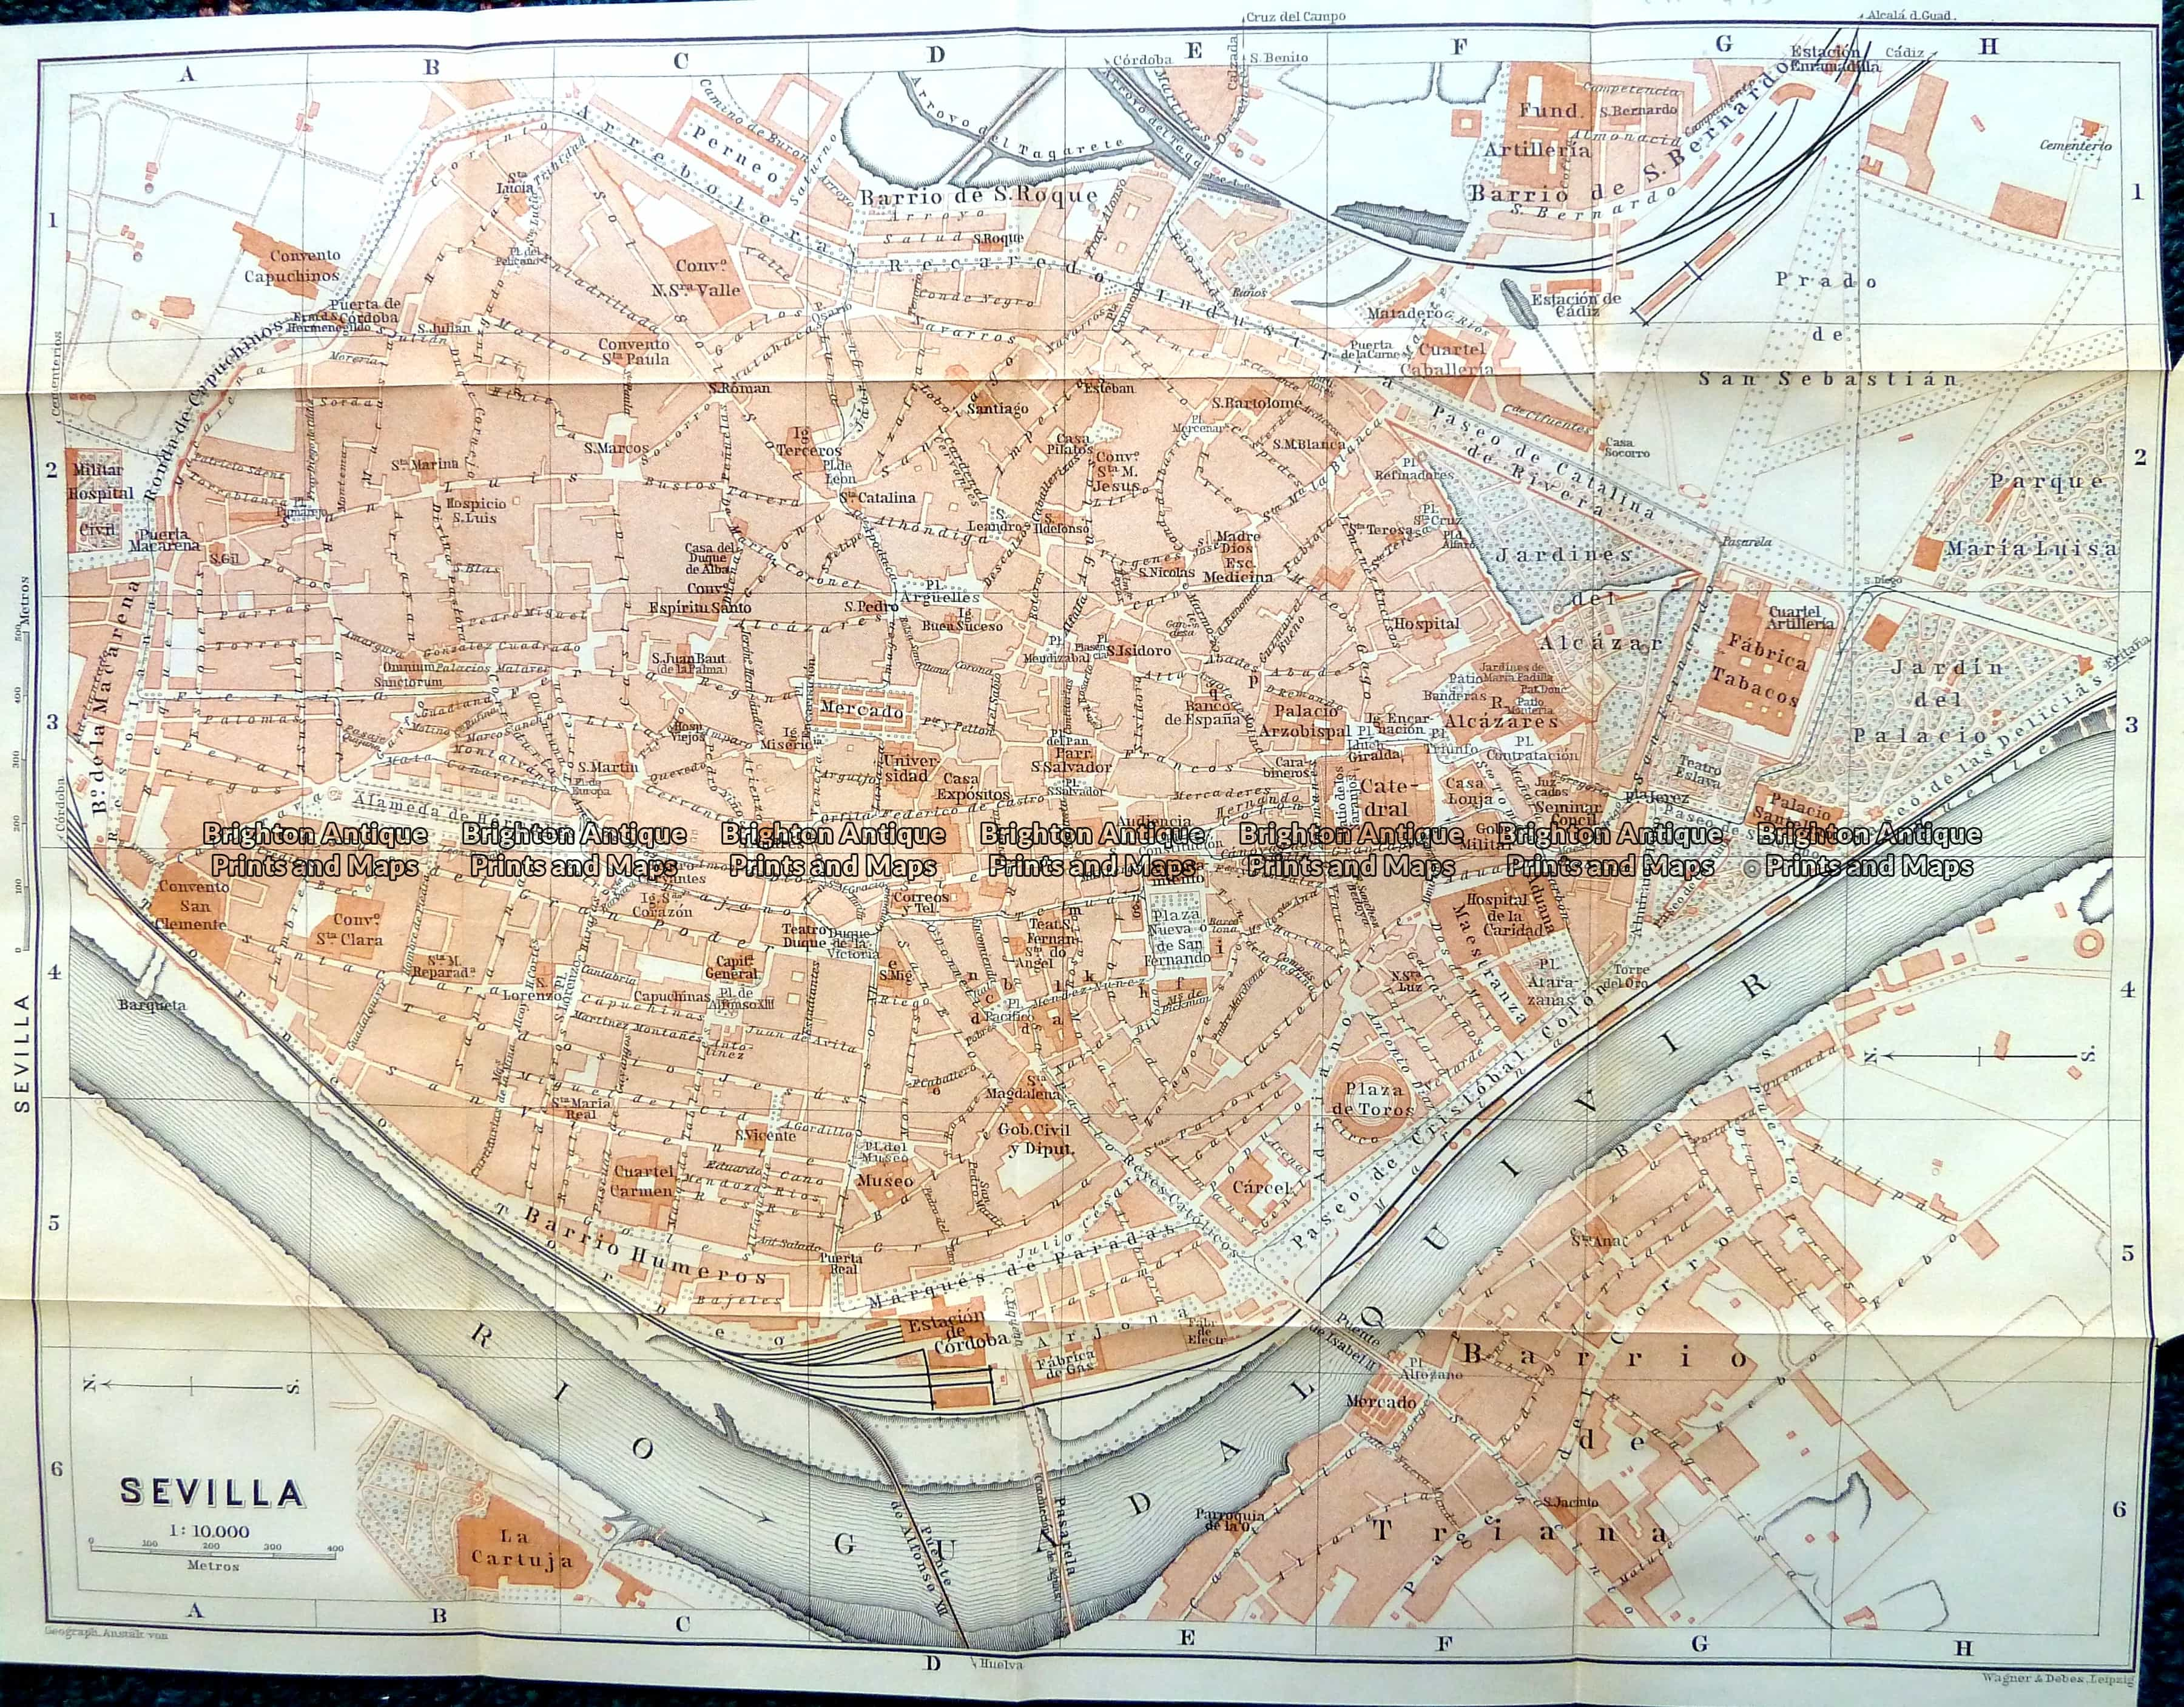 5-186 - Spain - Seville street map by Wagner & Dubes c.1911 ...